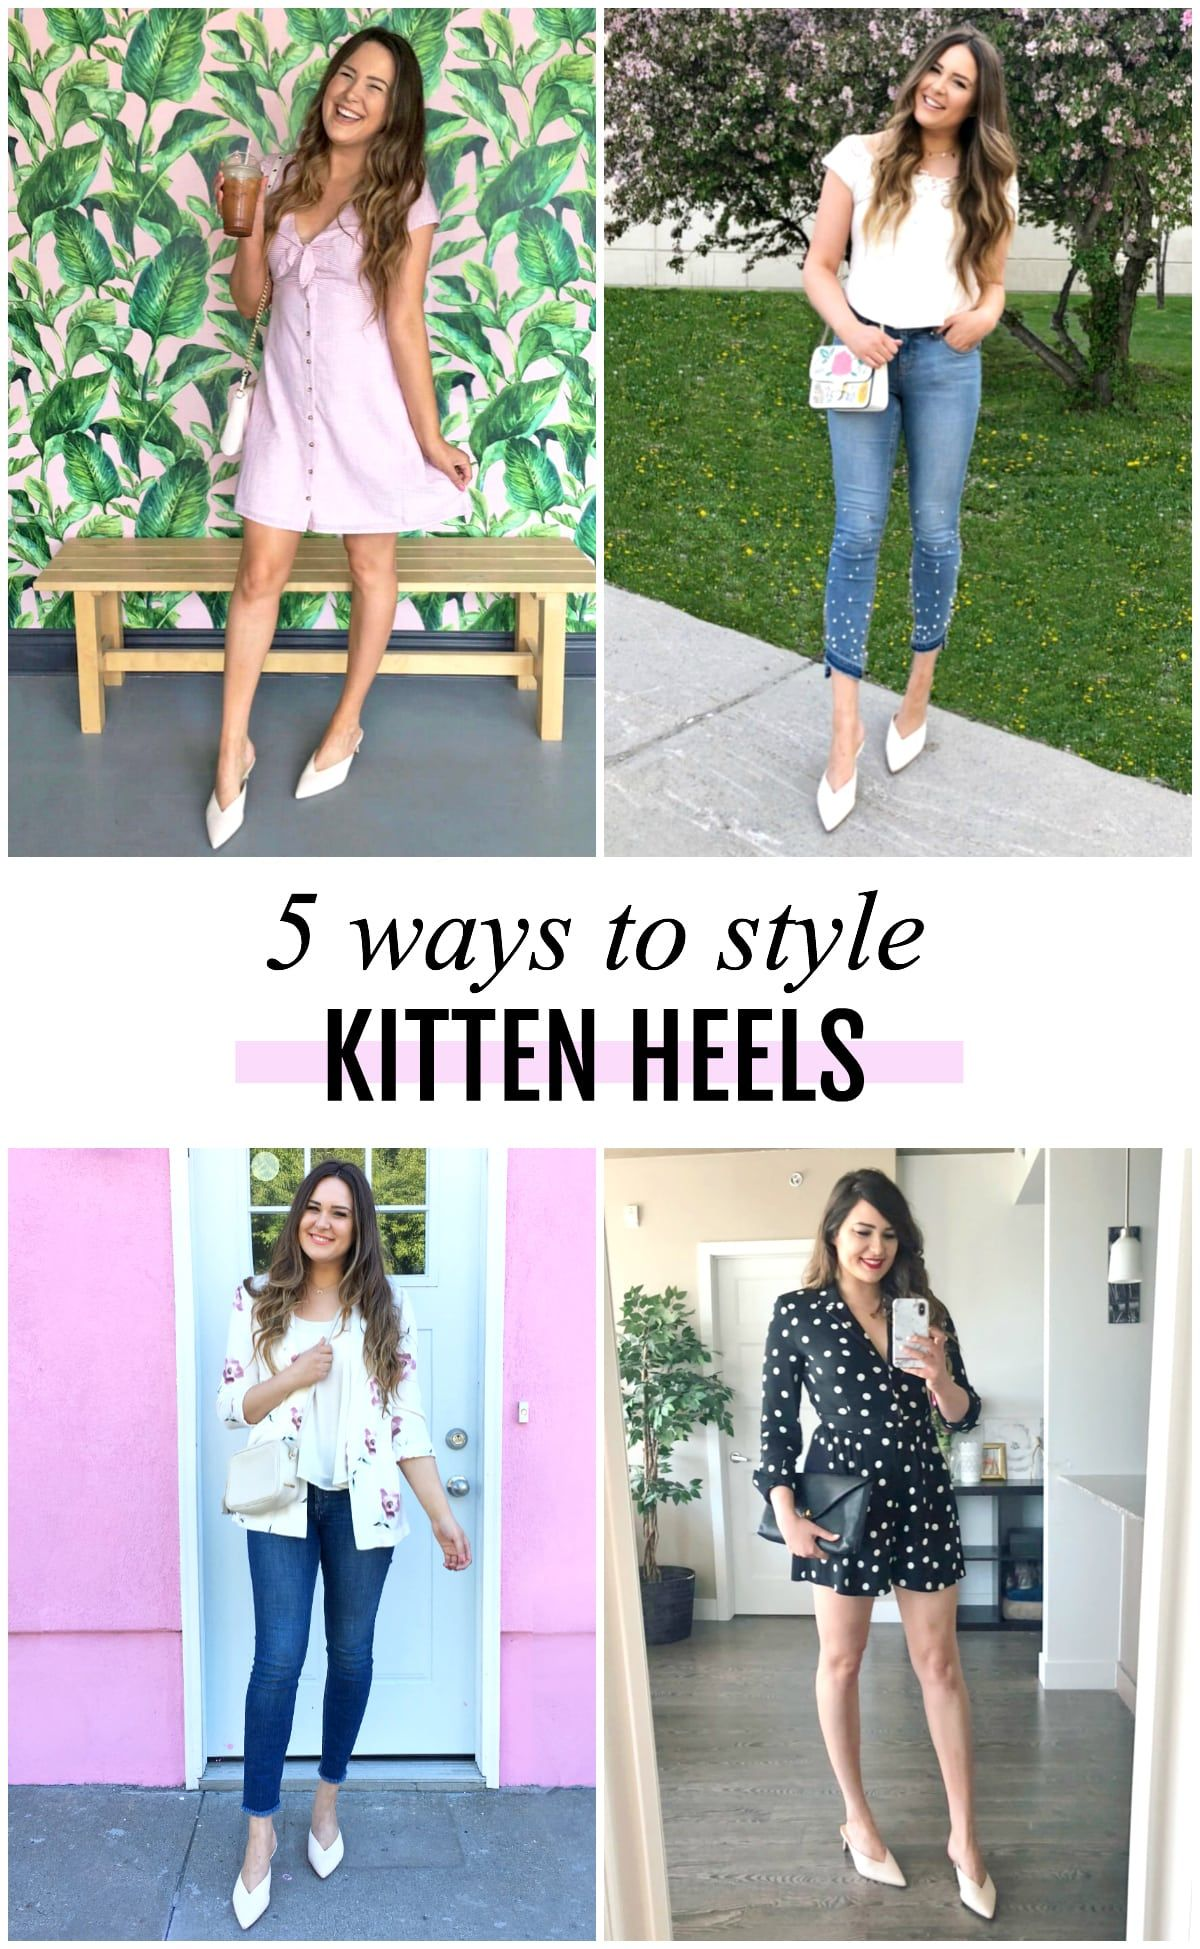 e5604e70d471 5 Easy Ways to Style Kitten Heels This Summer   Best Beauty & Style ...